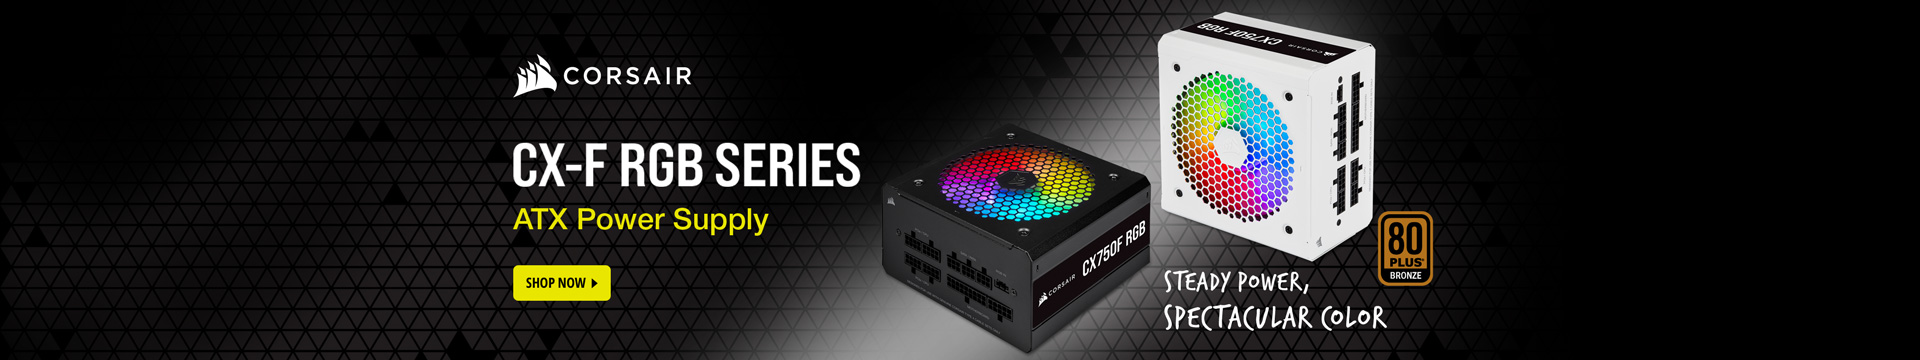 Corsair CX-F RGB Series